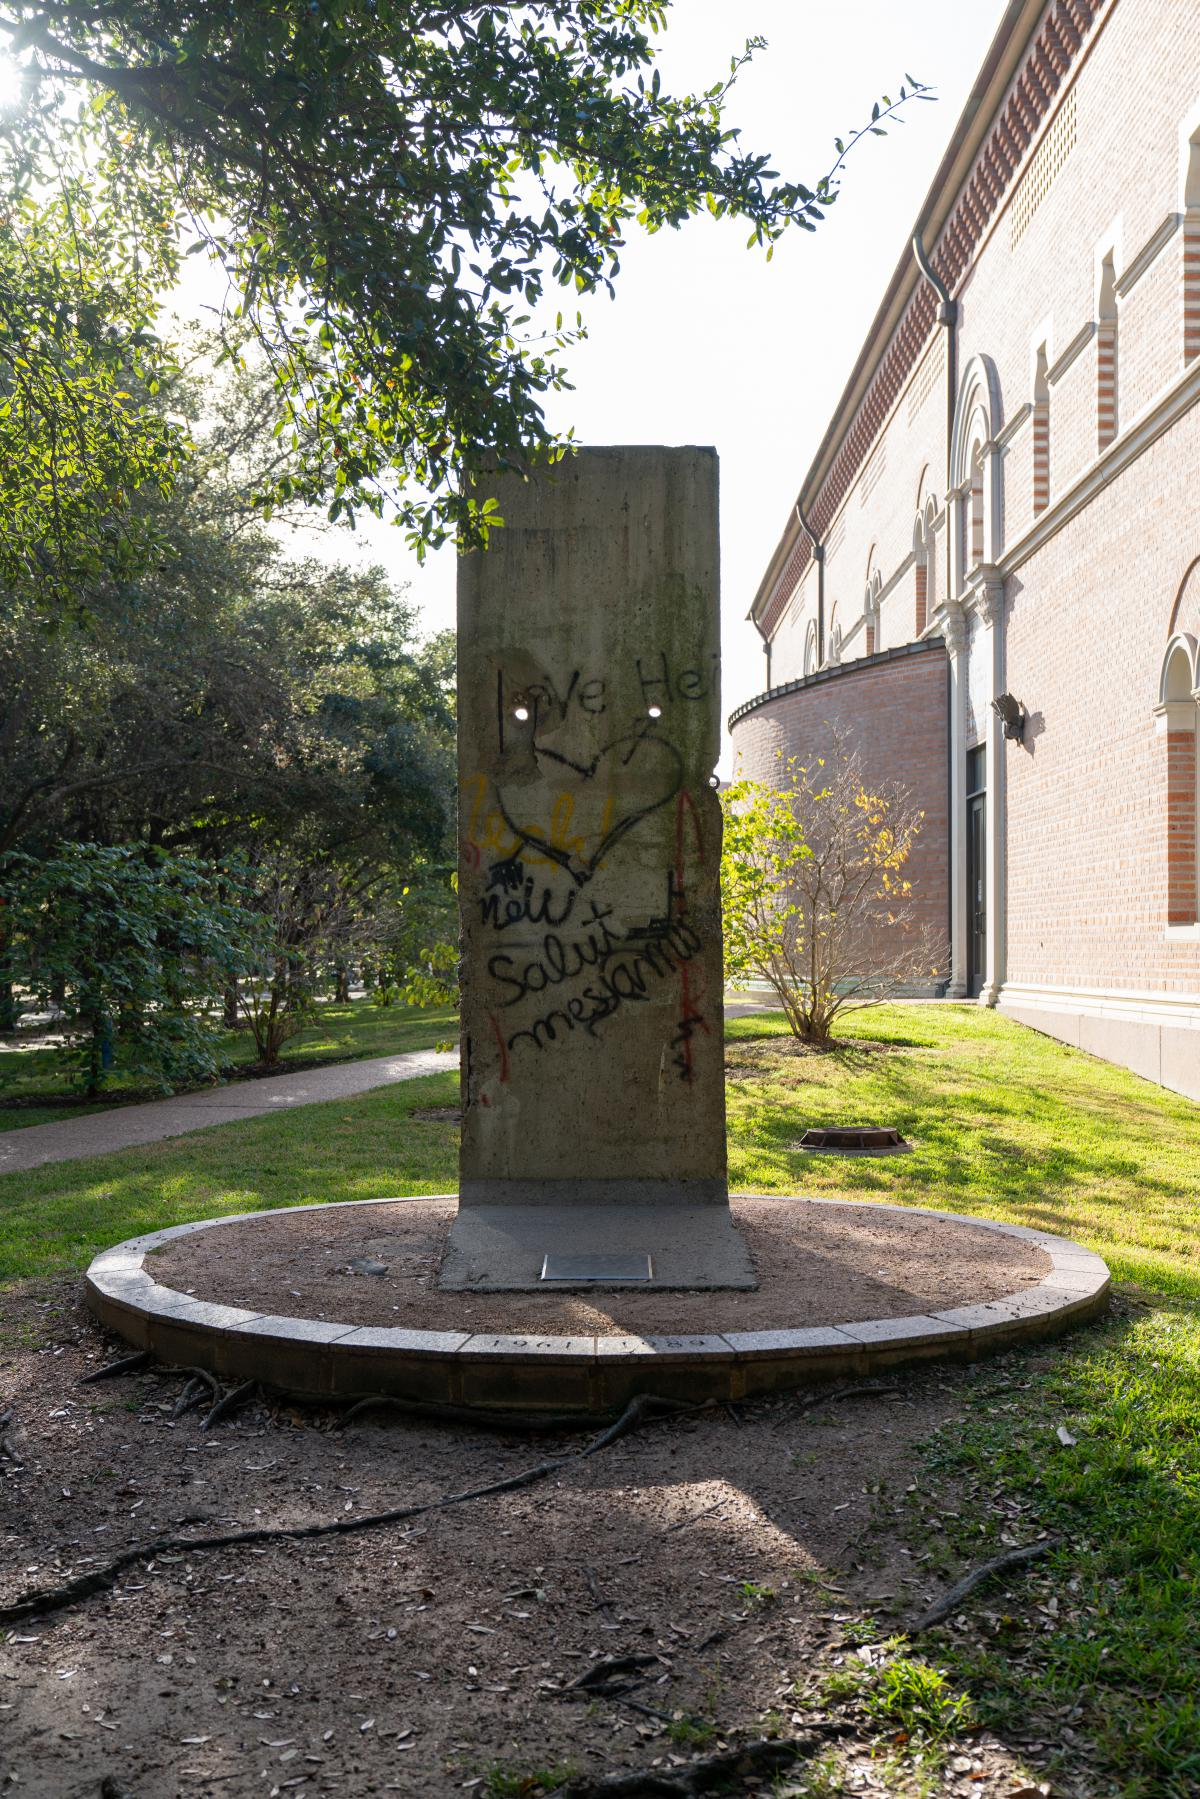 A picture of a piece of the Berlin Wall, which sits outside of Baker Hall. This piece of the Berlin Wall features graffiti, including a large heart in the center.